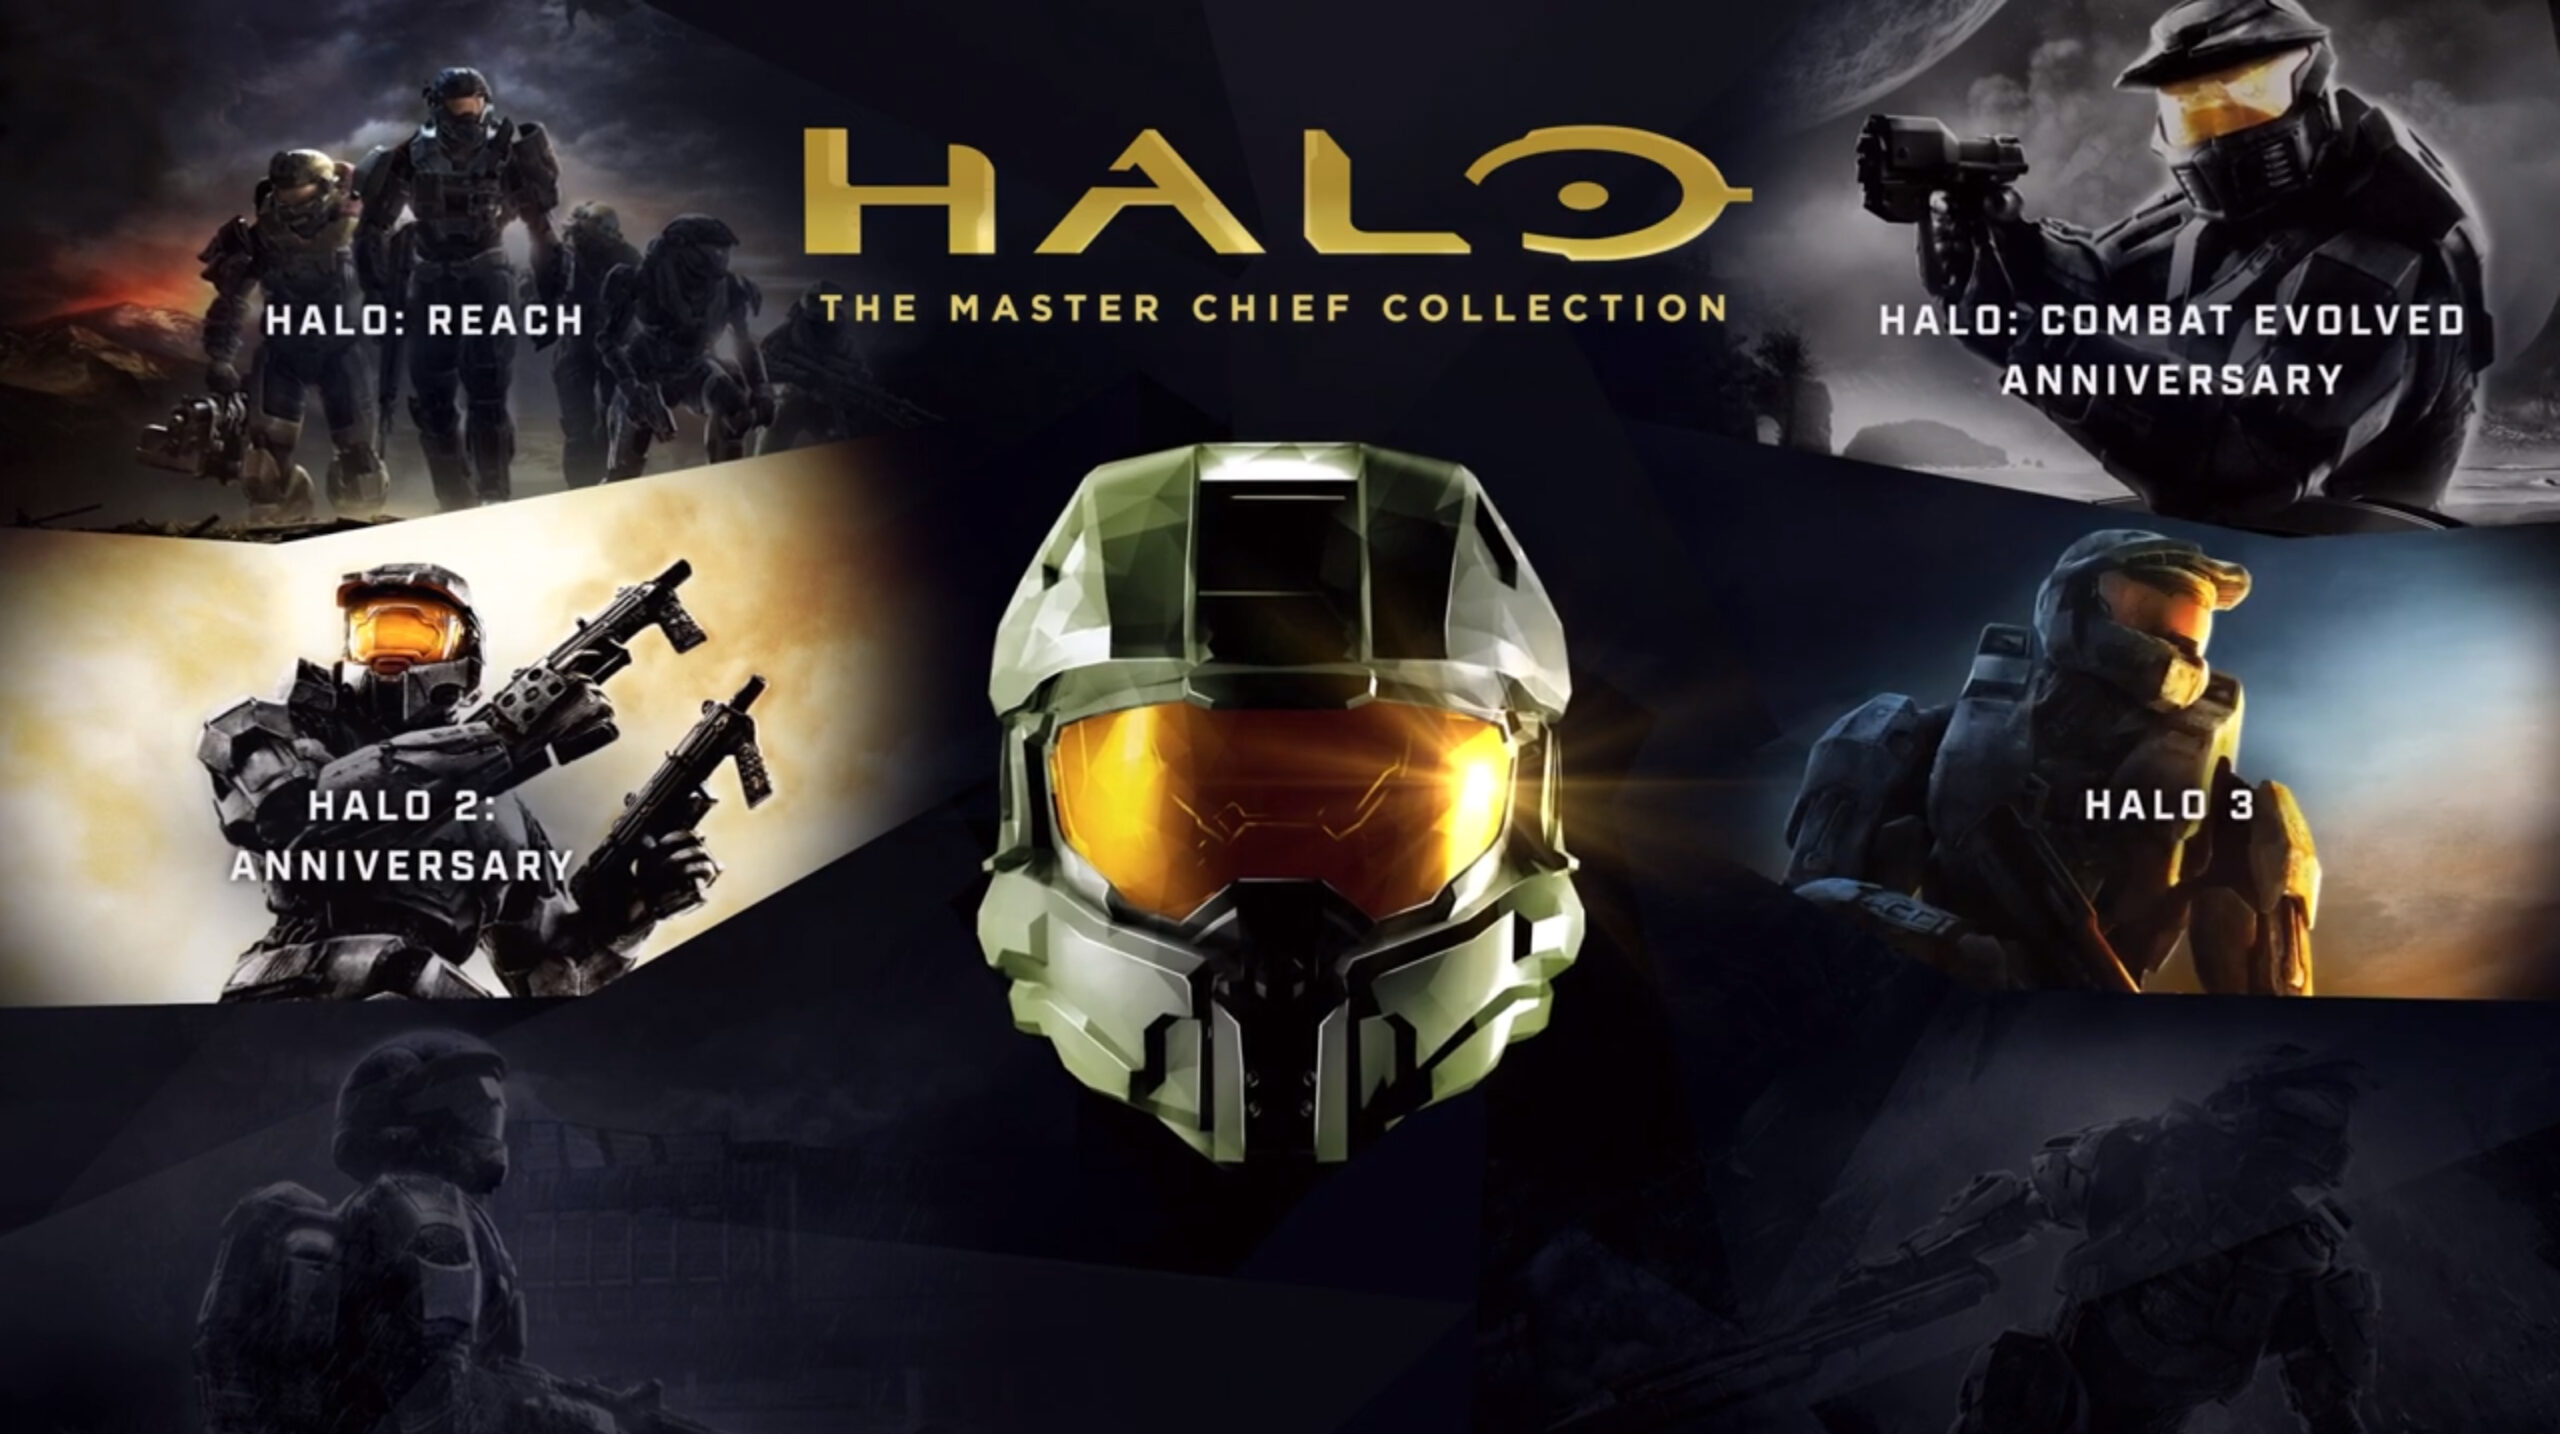 Halo The Master Chief Collection Halo 3 scaled 2